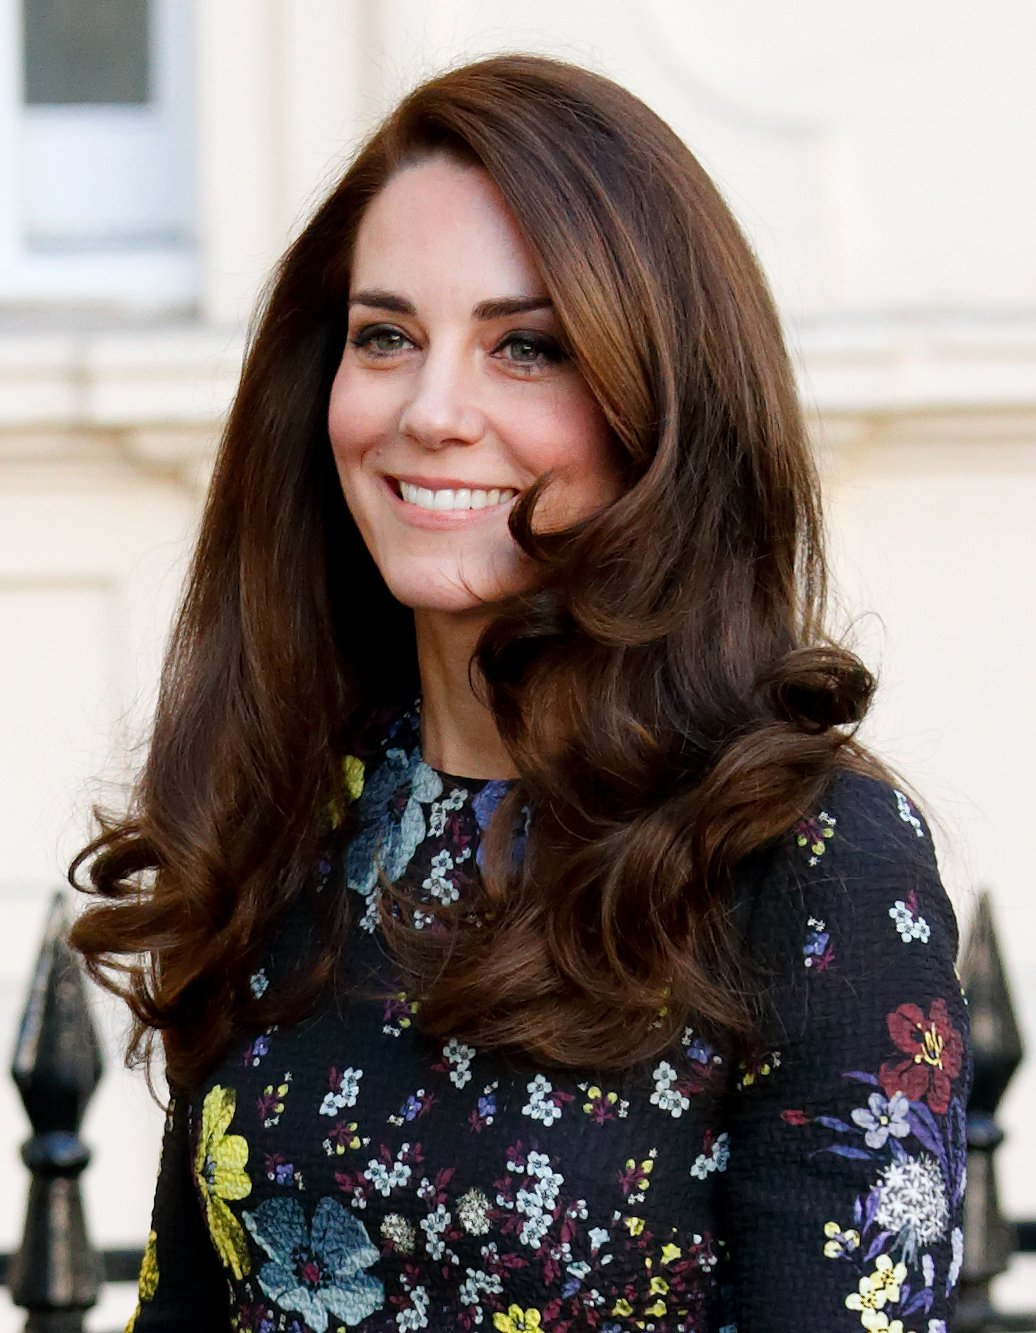 Image Source: Getty Images/Photo of Kate Middleton